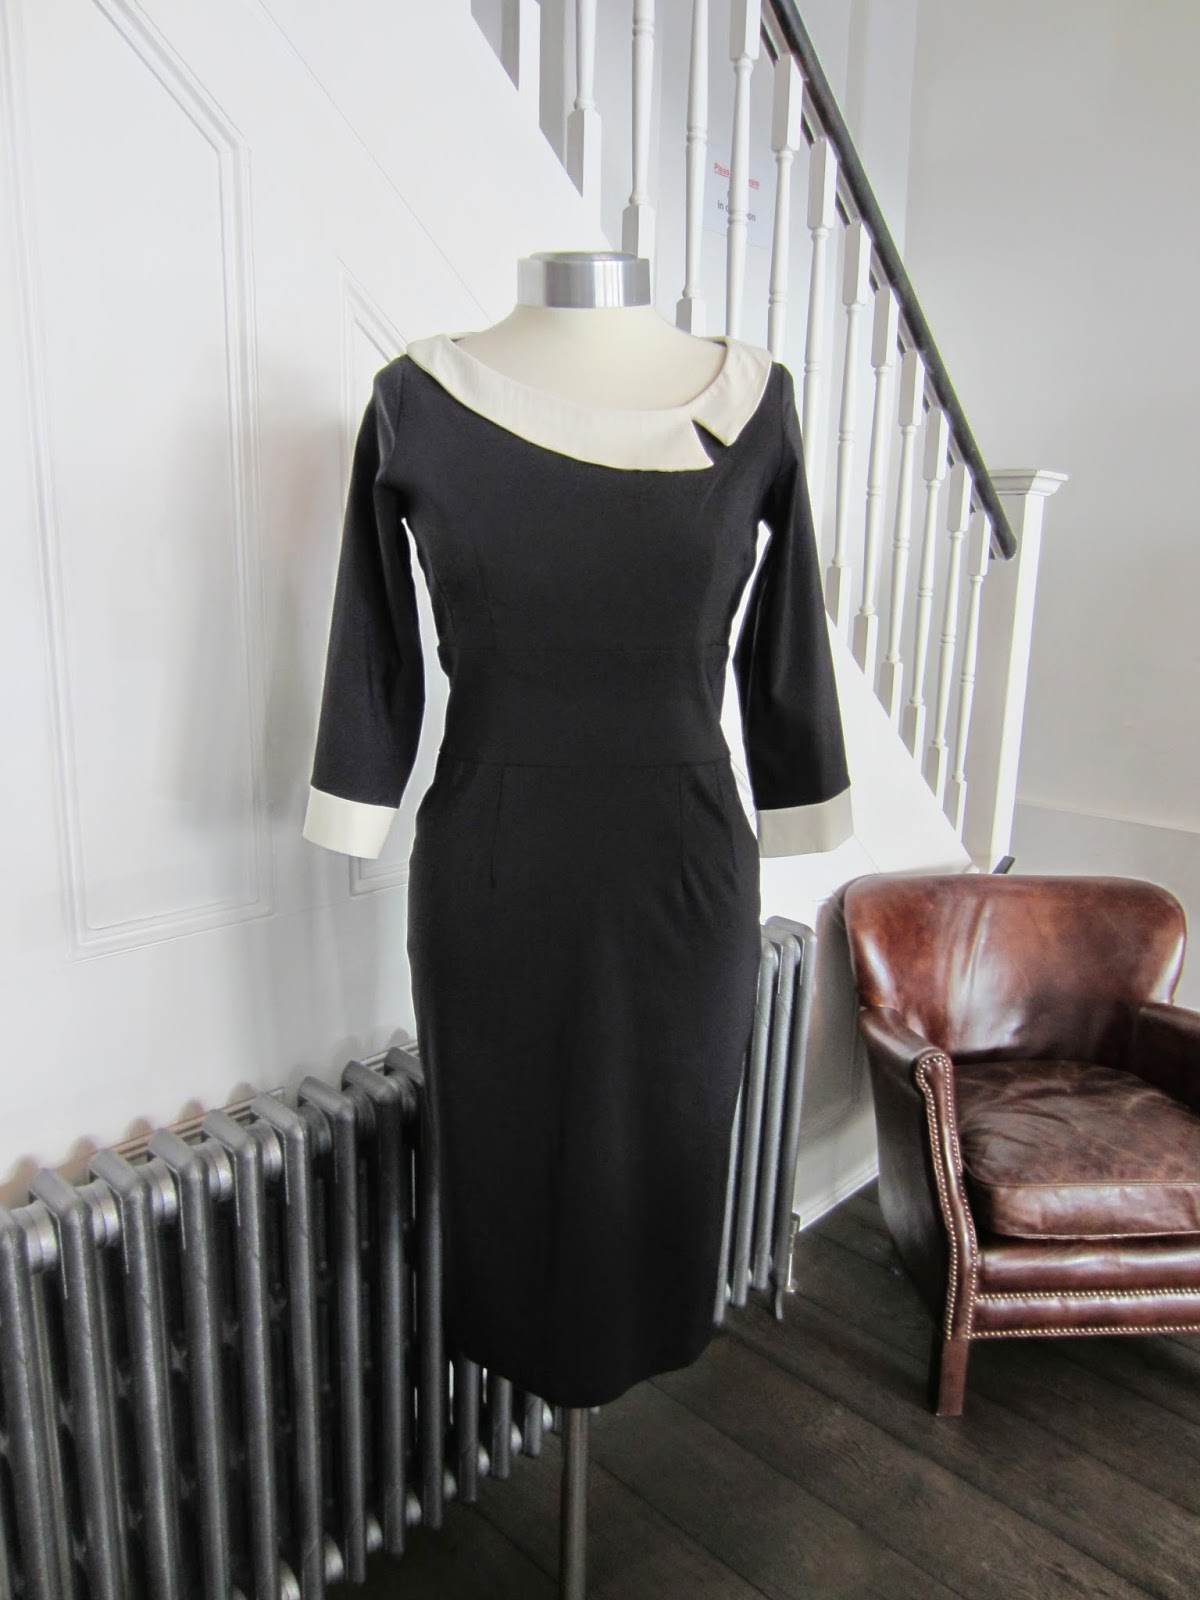 The Pretty Dress Company Black Dress with White Trim